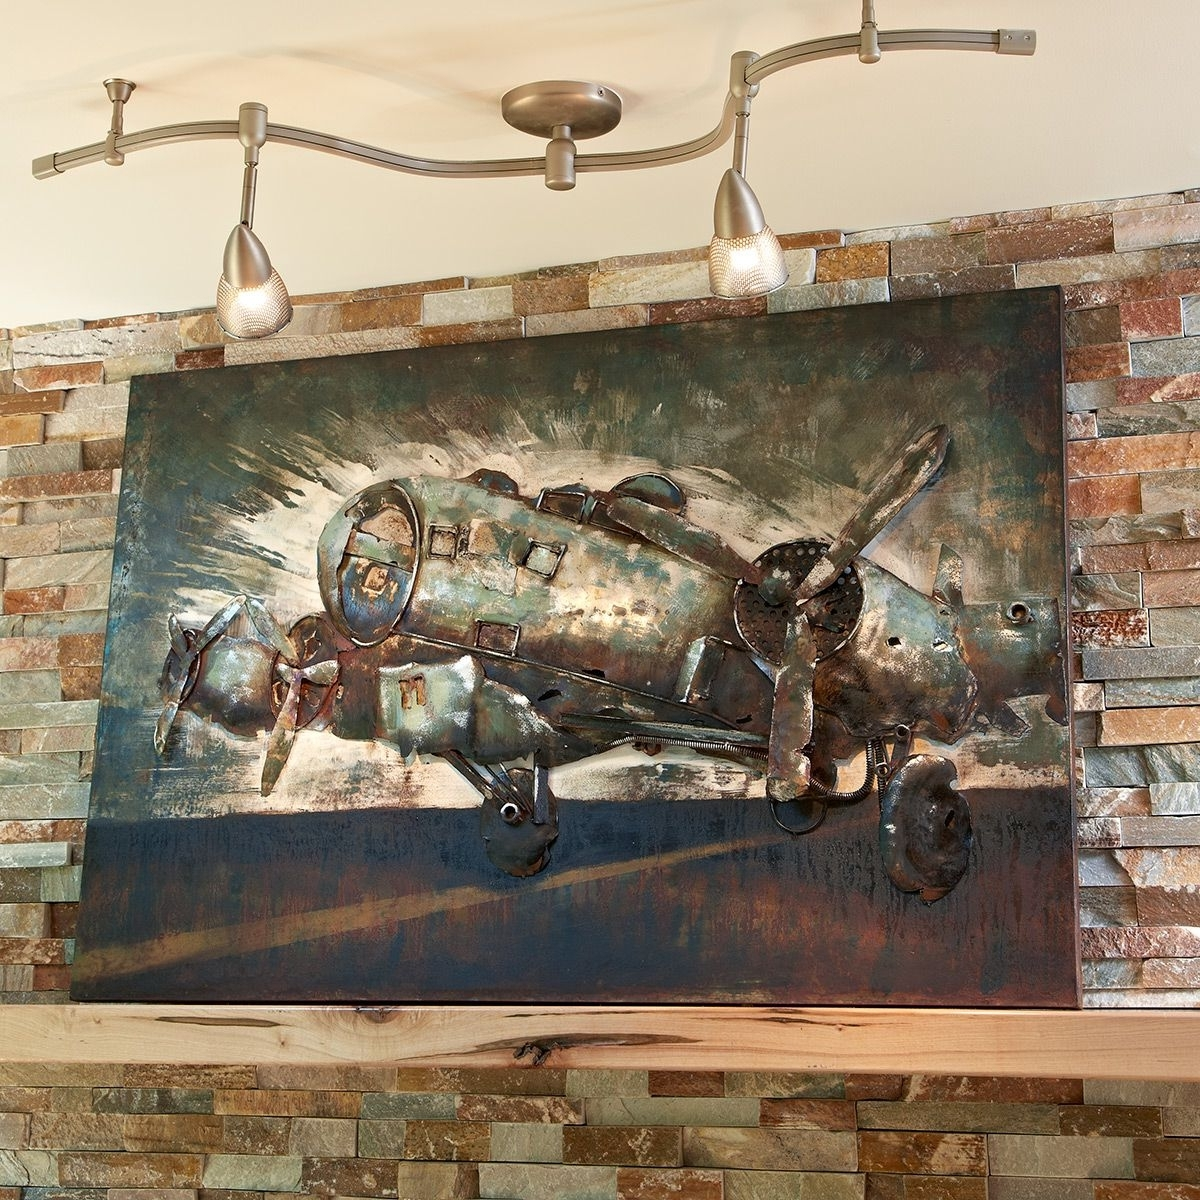 Favorite Wall Art Classy Design Aviation Wall Decor With Metal B 17 Bomber Intended For Aviation Wall Art (View 8 of 15)